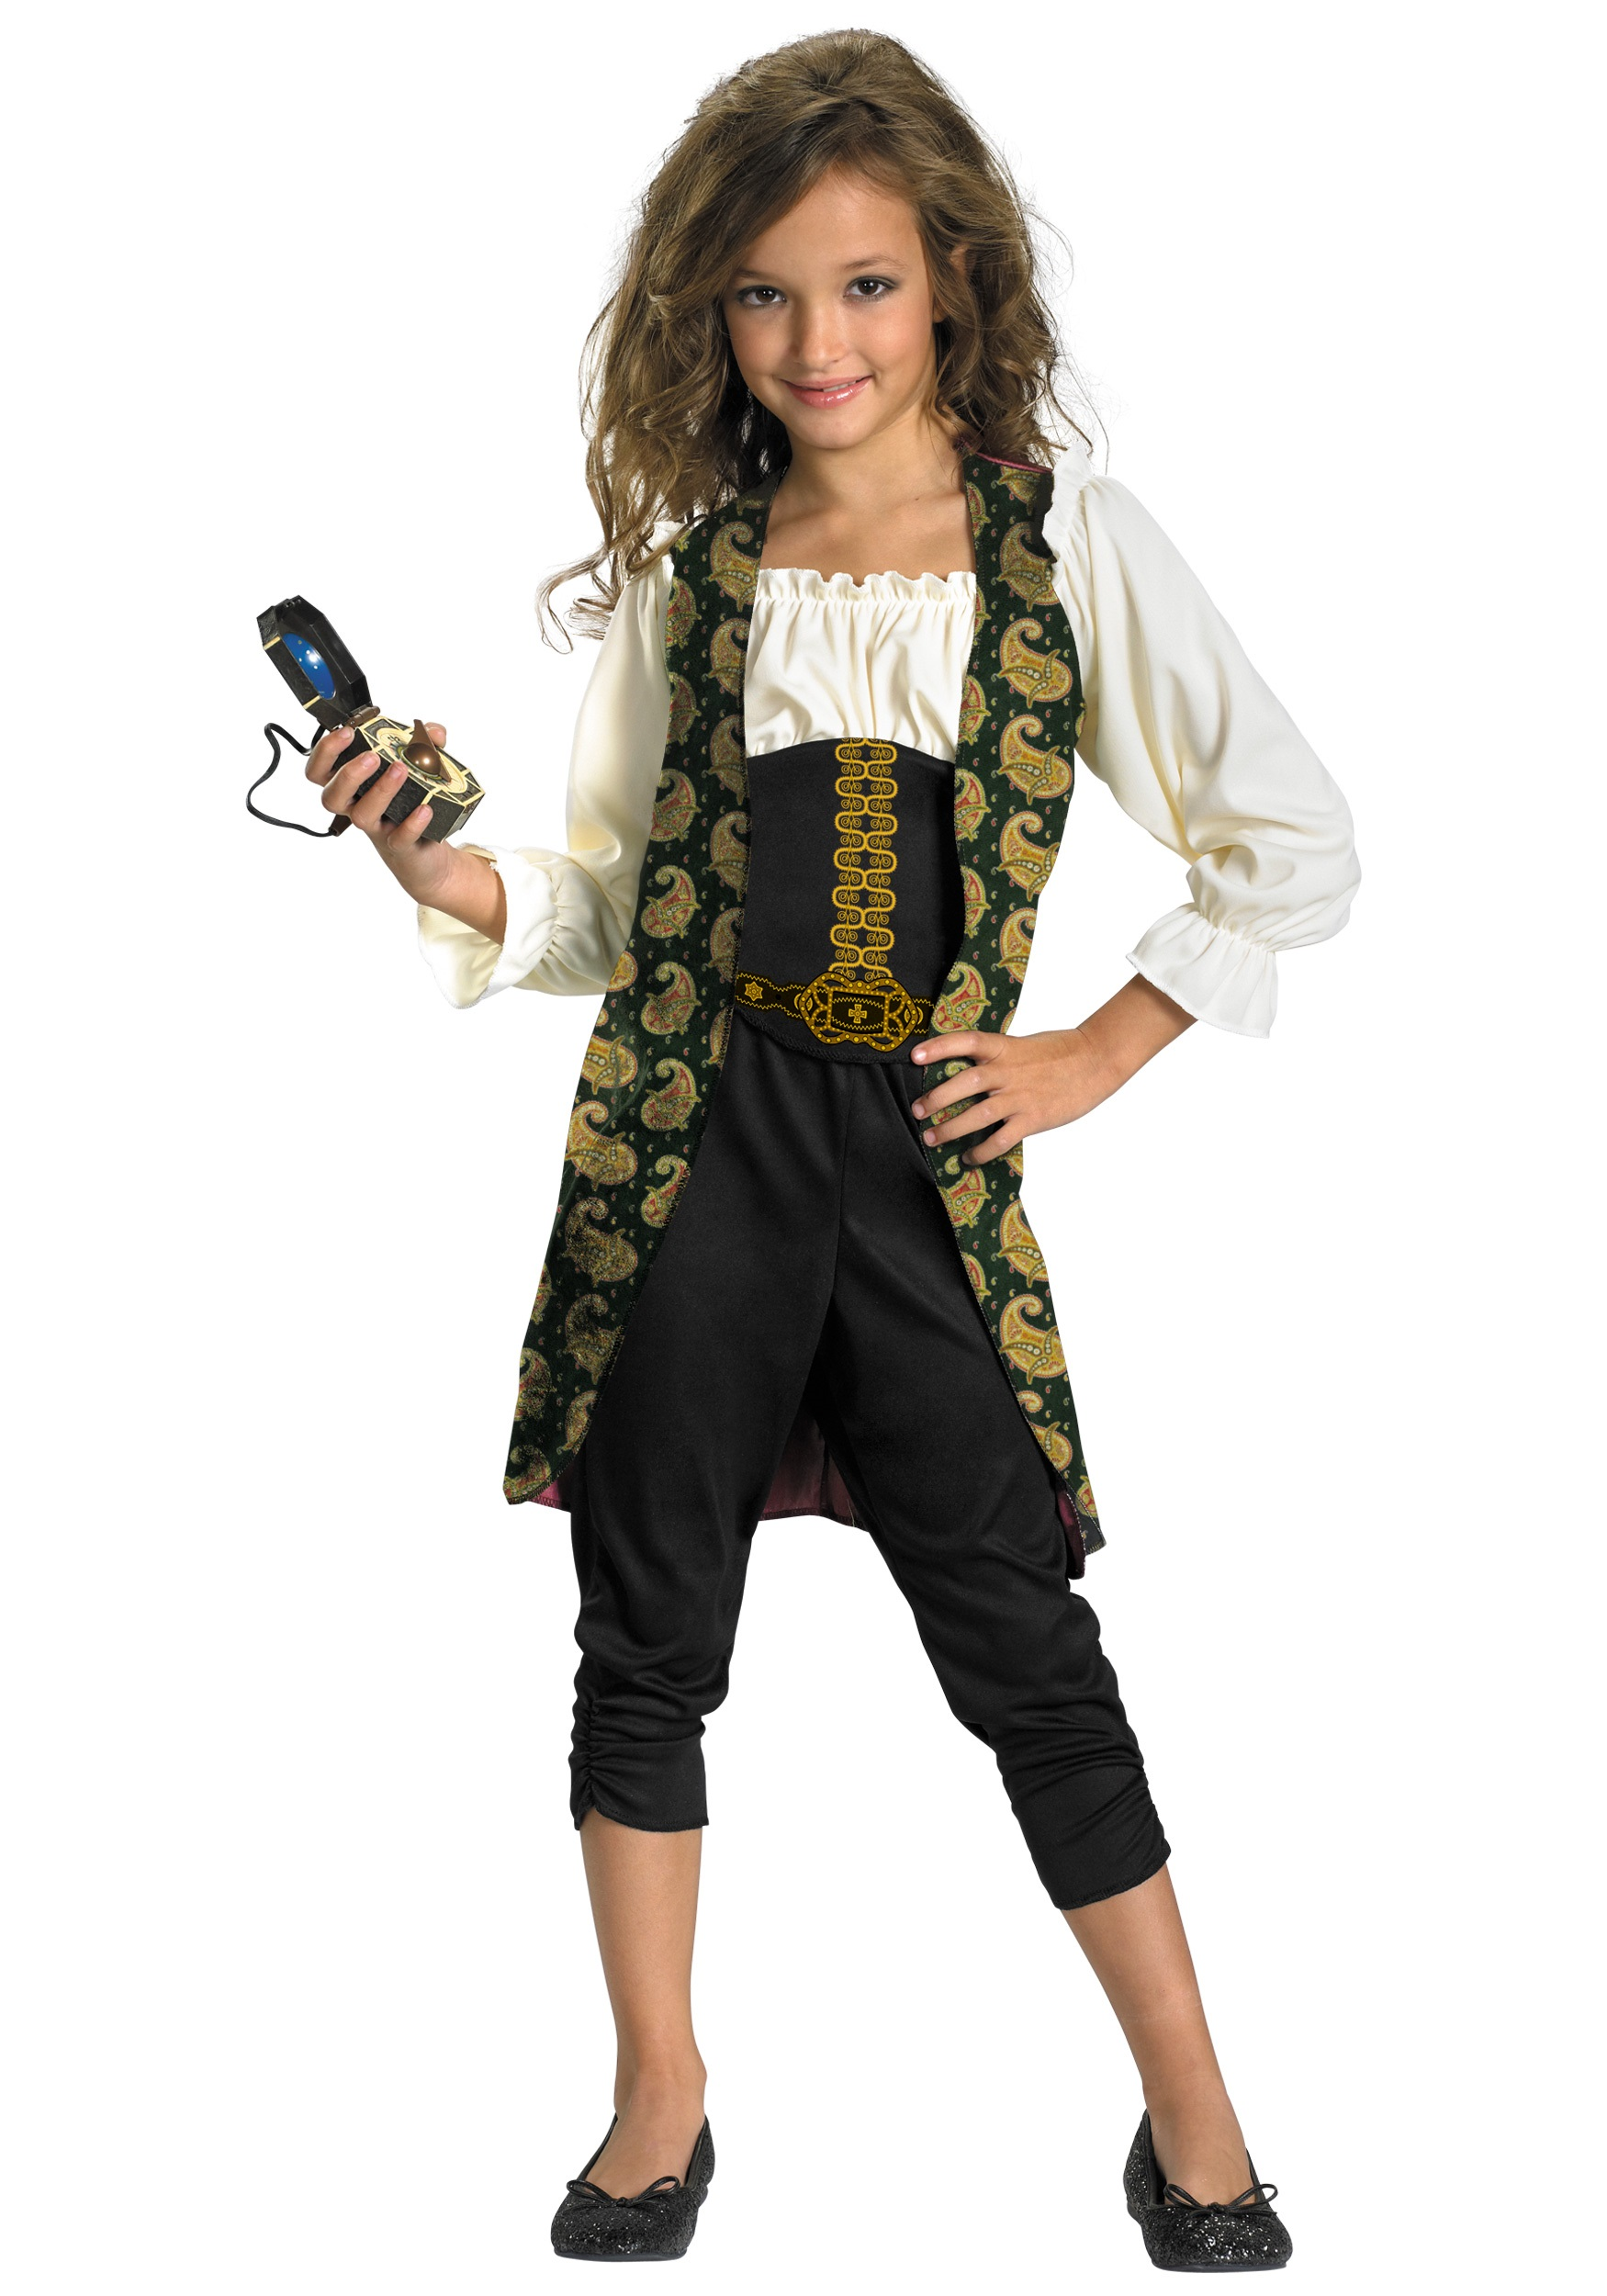 Tween girl pirate costume - photo#24  sc 1 st  animalia-life.club & Tween Girl Pirate Costume